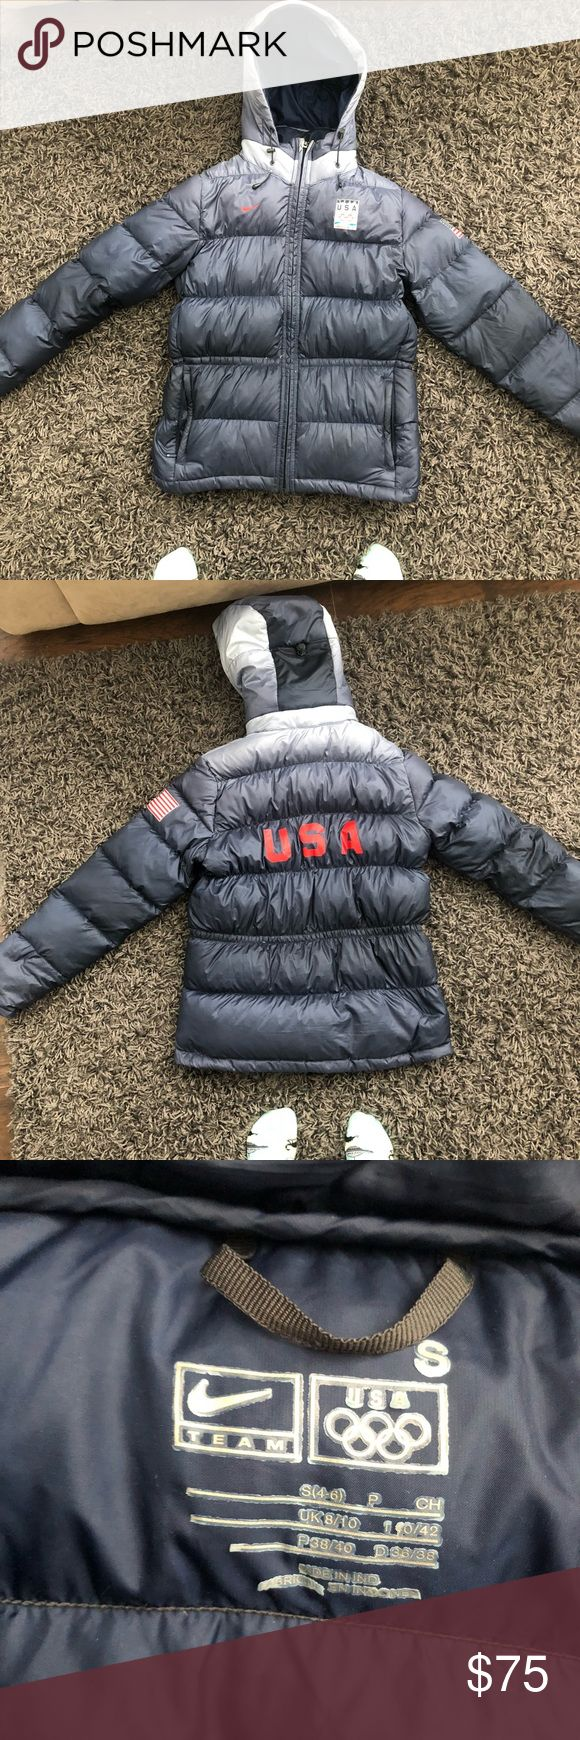 Team USA Nike winter jacket Authentic Team USA Nike winter jacket from the 2010 Vancouver Winter Olympics. In used, but good condition. Nike Jackets & Coats Puffers